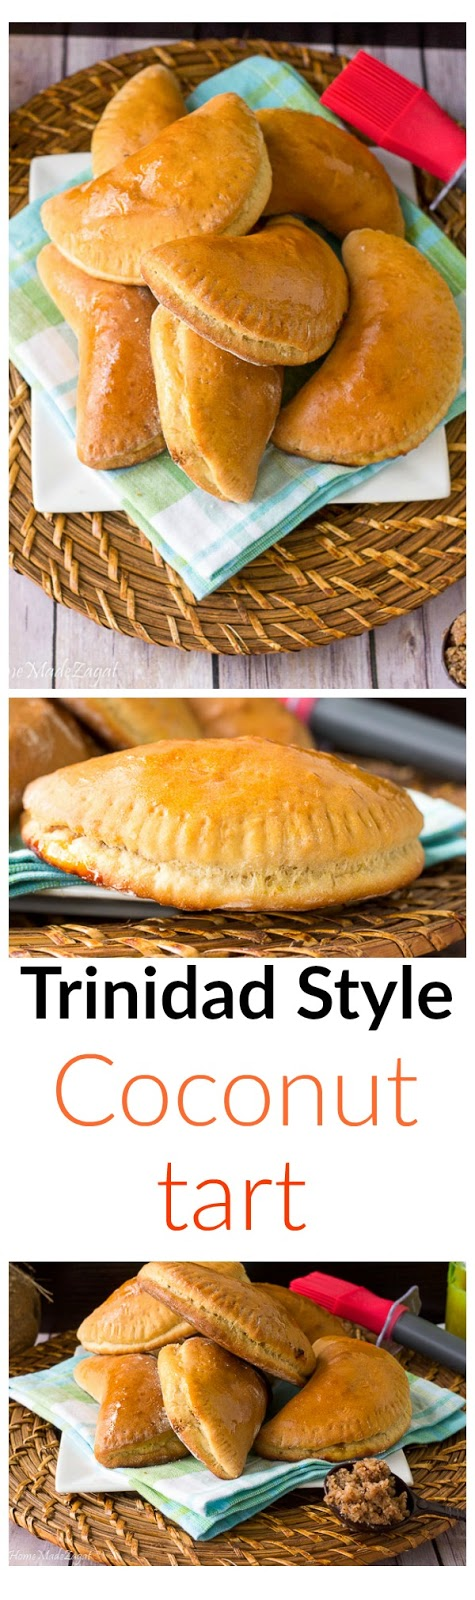 "Trinidad Style Coconut Tart - A common Trinidad and Tobago baked pastry stuffed with blended coconut ""stewed"" with additional spices like cinnamon, nutmeg and ginger. #Caribbean, #Trinidad"